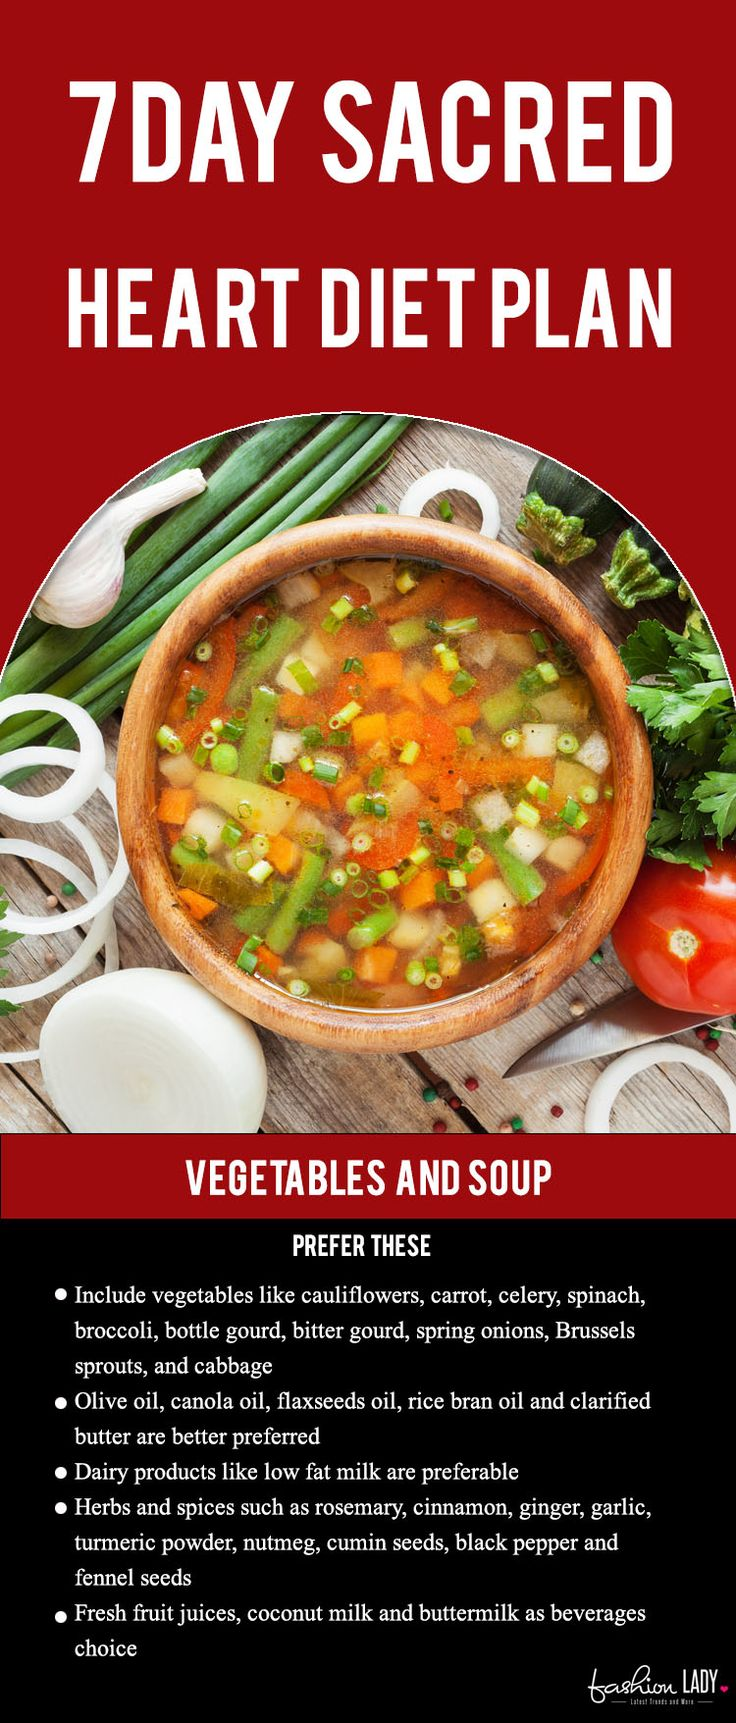 7 Day Sacred Heart Diet Plan Vegetable Soup Recipes Soup Recipes Healthy Soup Recipes